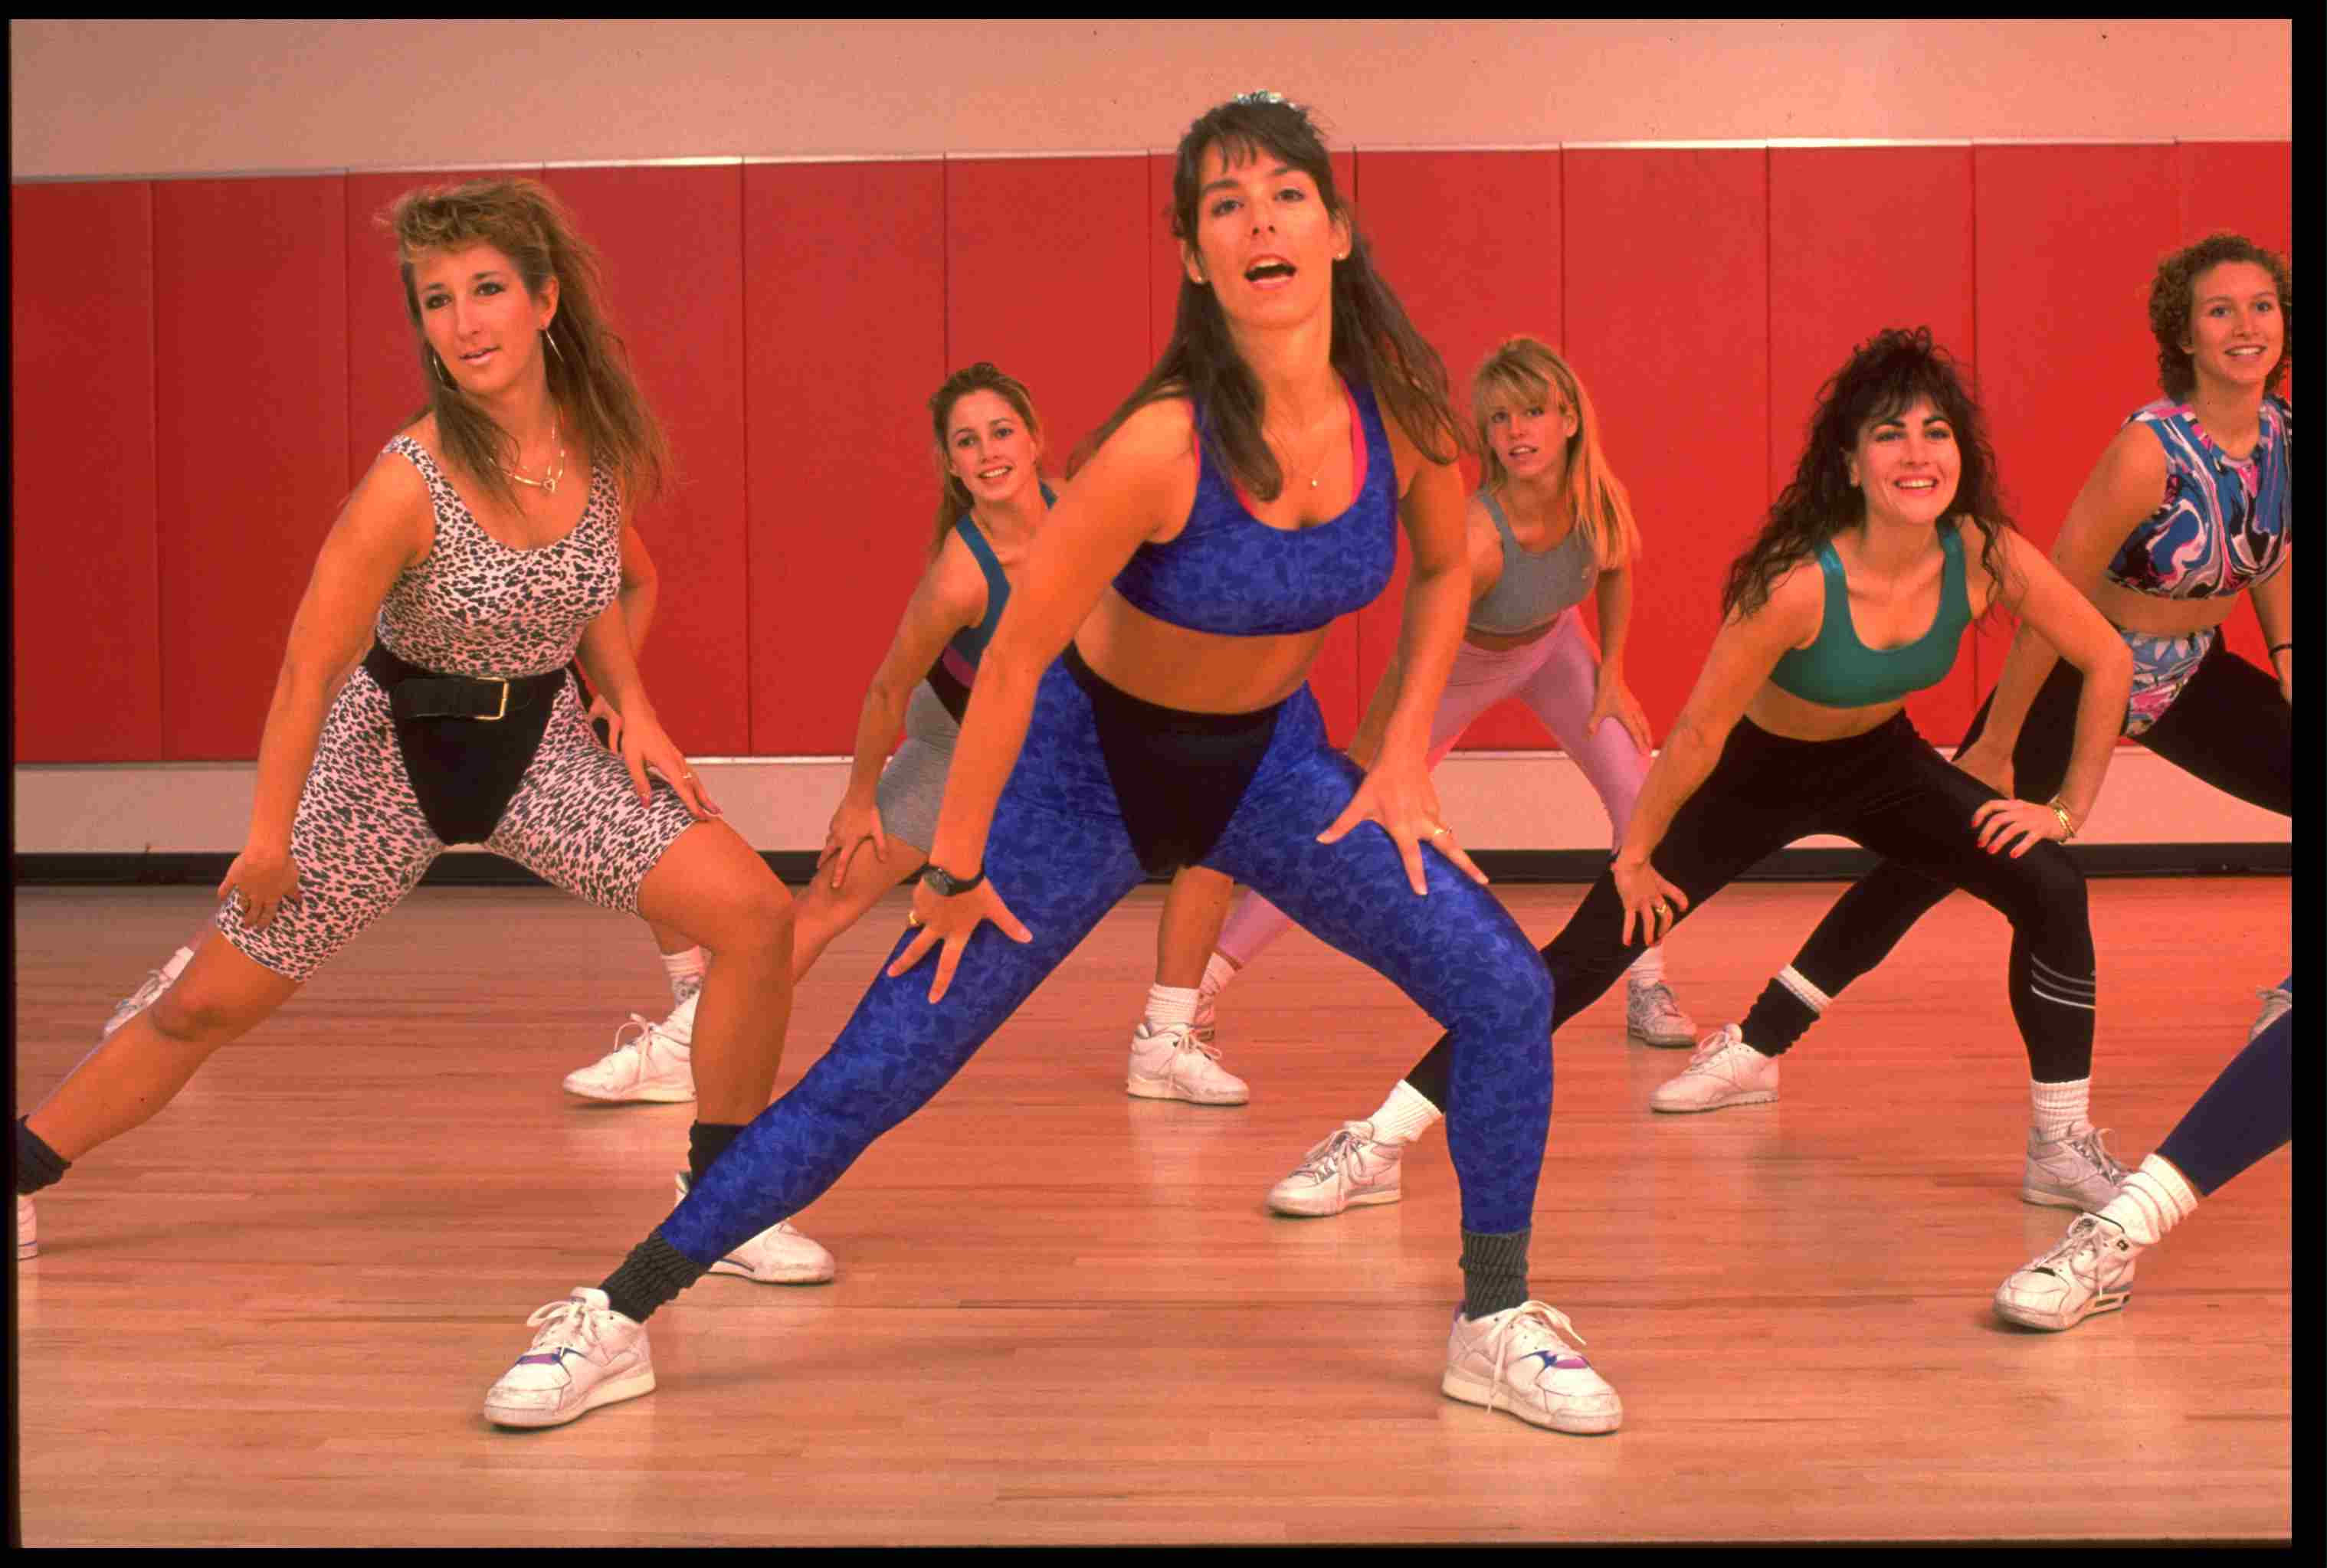 Aerobics class in a lunge 1980s